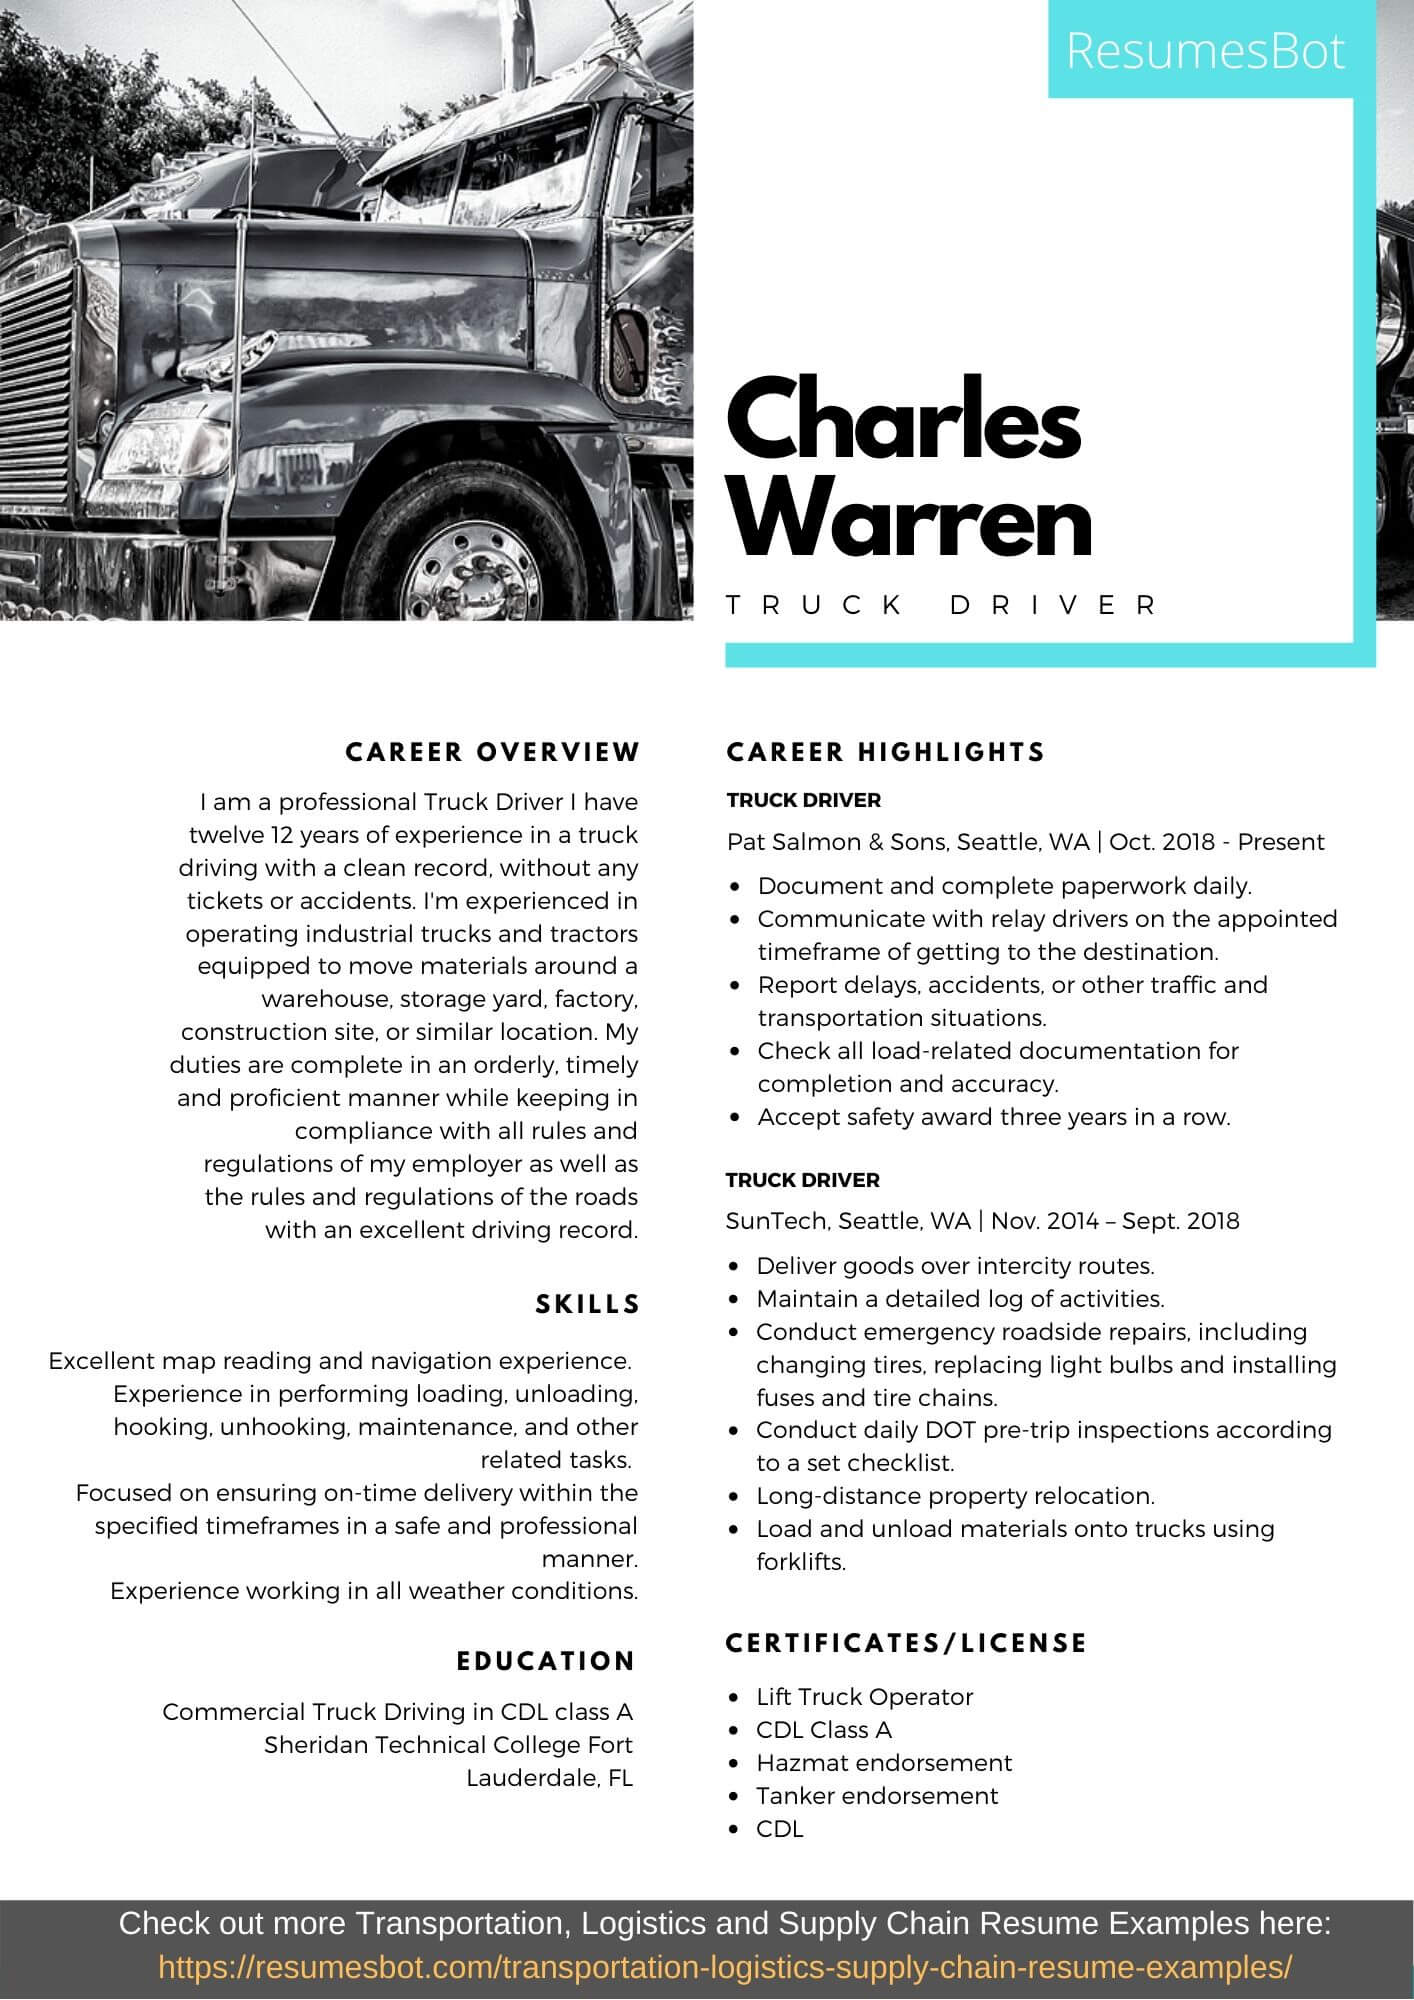 truck driver resume samples and tips pdf resumes bot haul sample example best for account Resume Long Haul Truck Driver Resume Sample